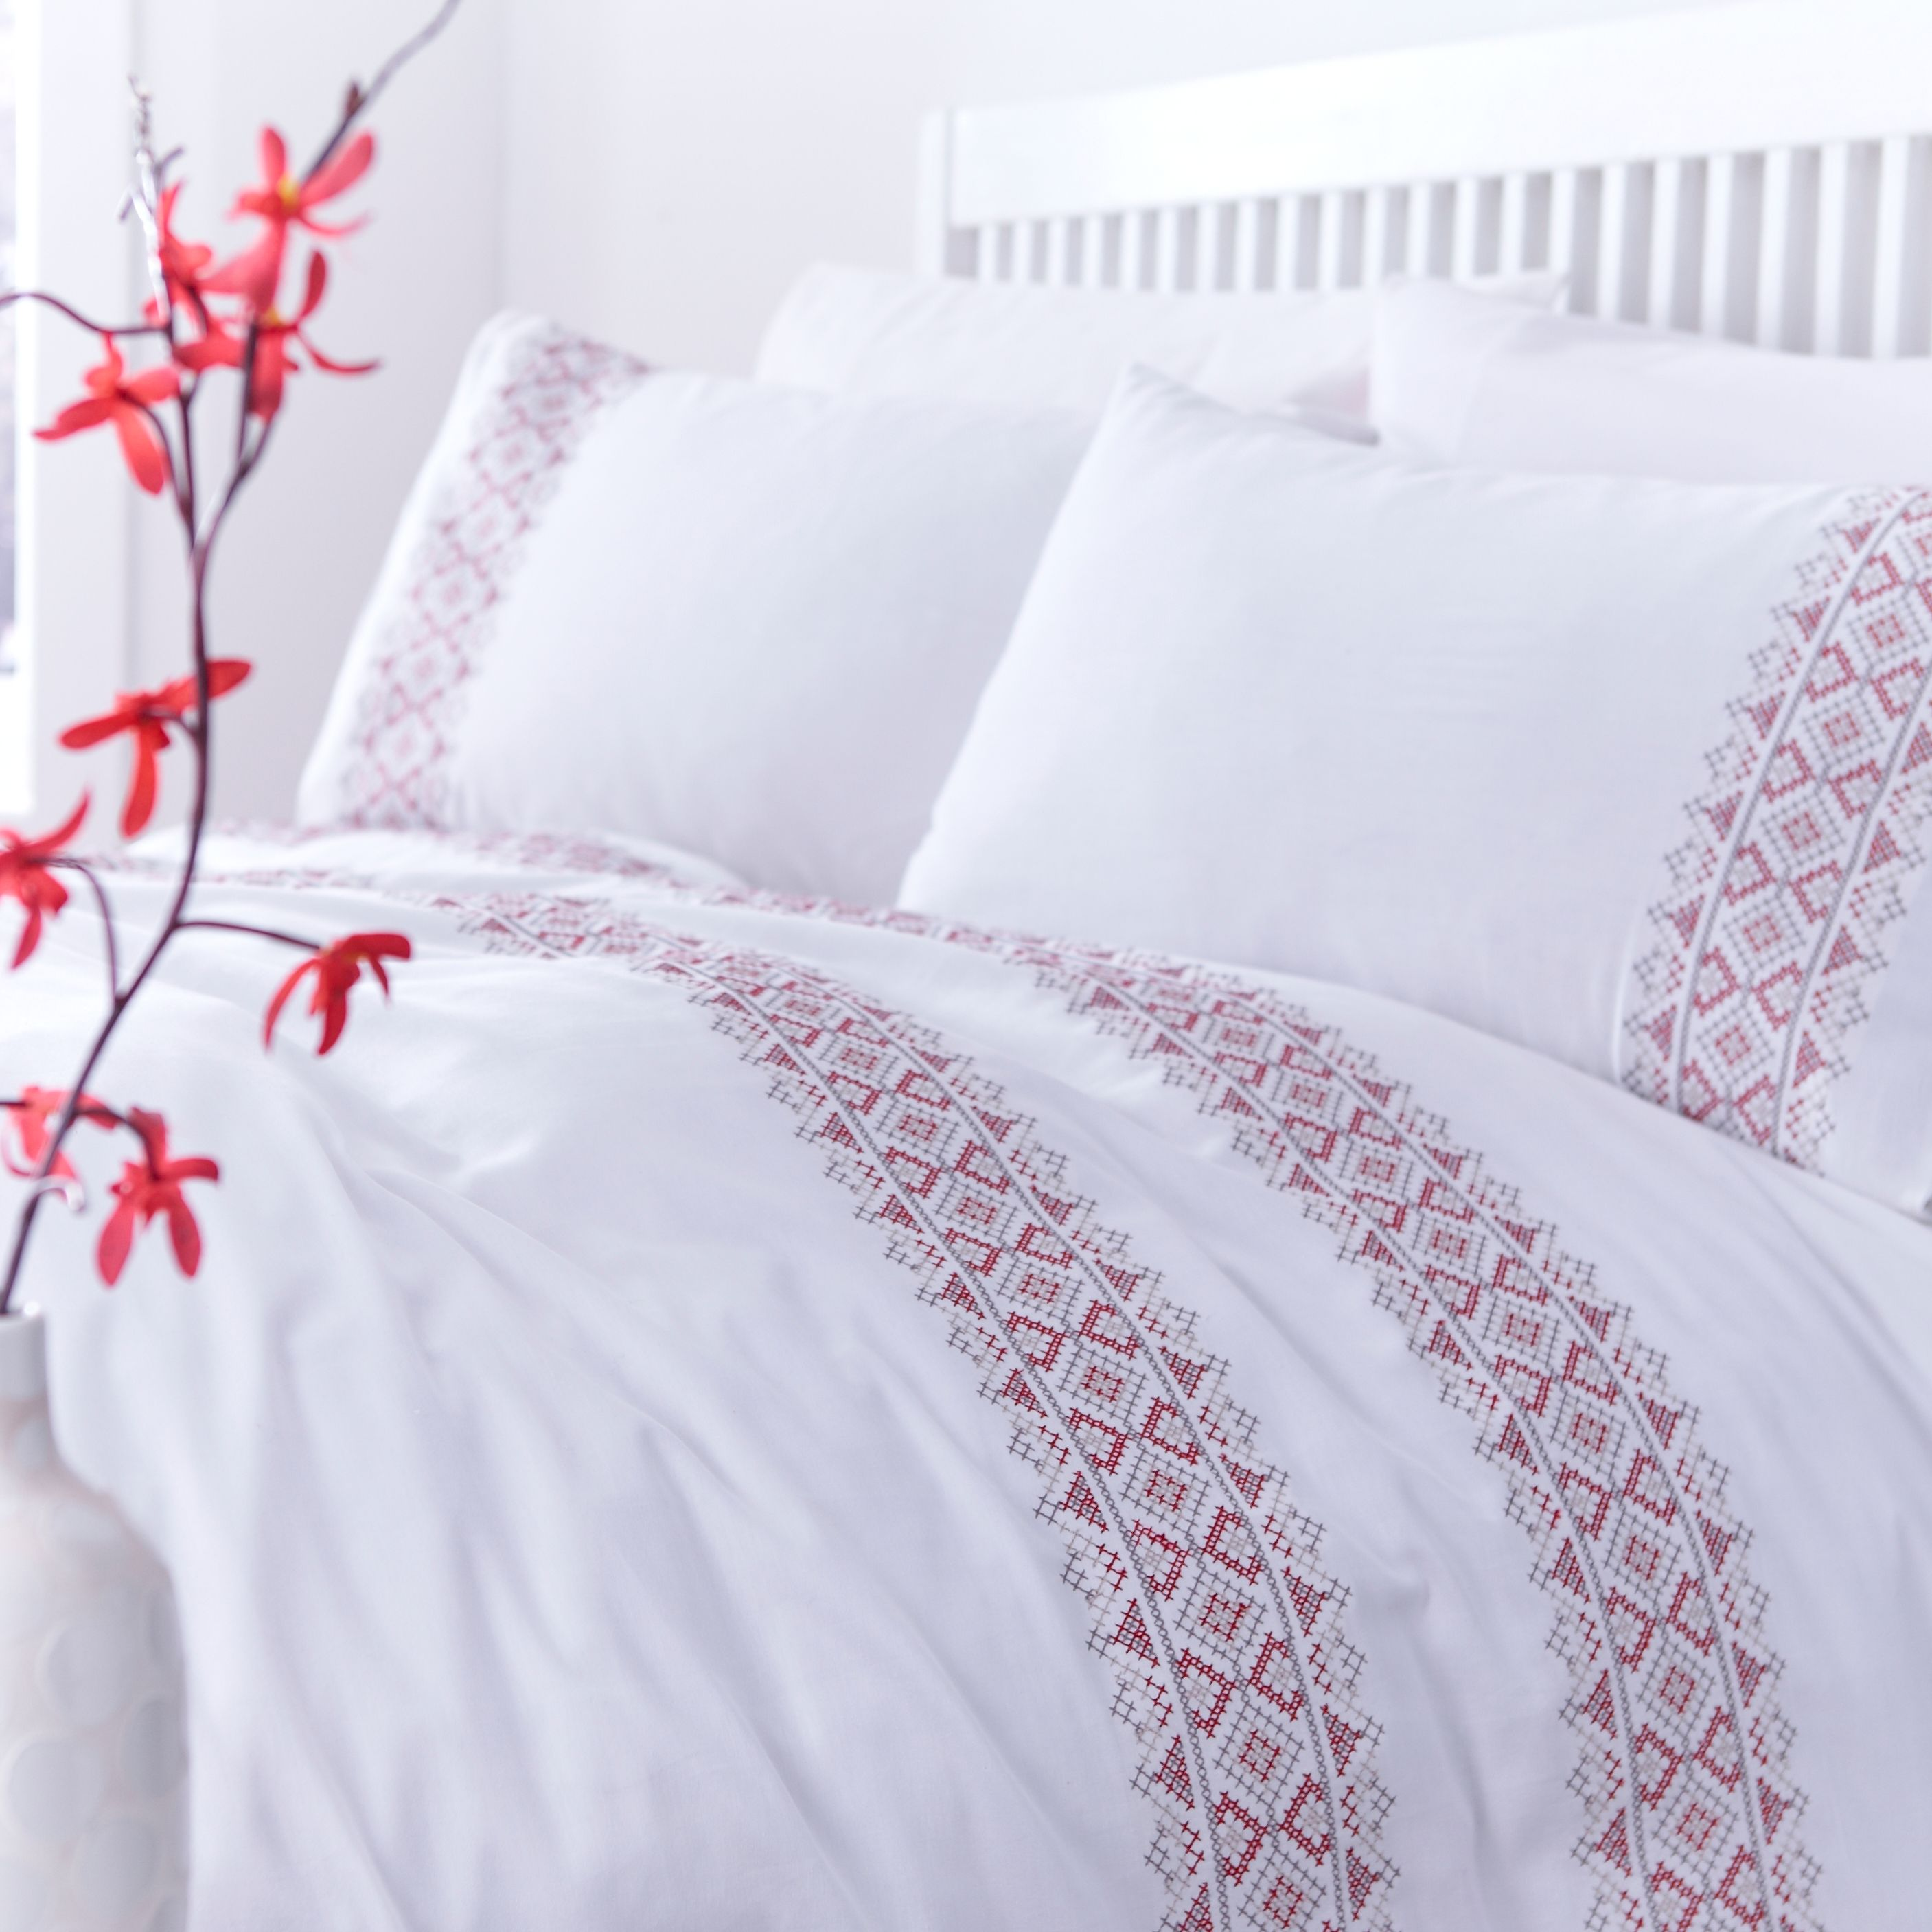 Thrift Indigo Bed Linen Range